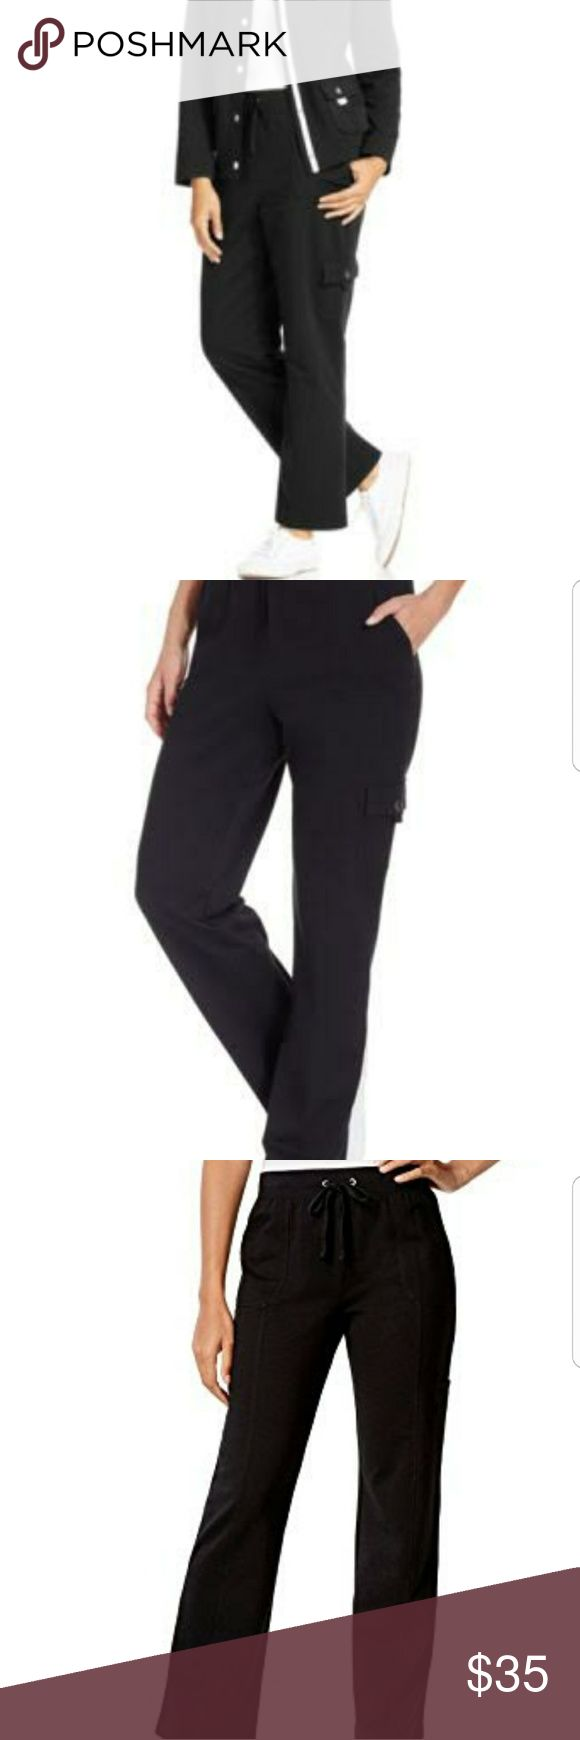 🎉 New Karen Scott Sport Drawstring Cargo Pants New Karen Scott sport Drawstring Cargo Pants  97% Cotton 3% Spandex Machine Wash  3 pockets  all together. 2 side slash pockets and a small cargo pocket on one leg NEW WITH TAGS  Size Large   I do bundle and offers are welcome Karen Scott Pants